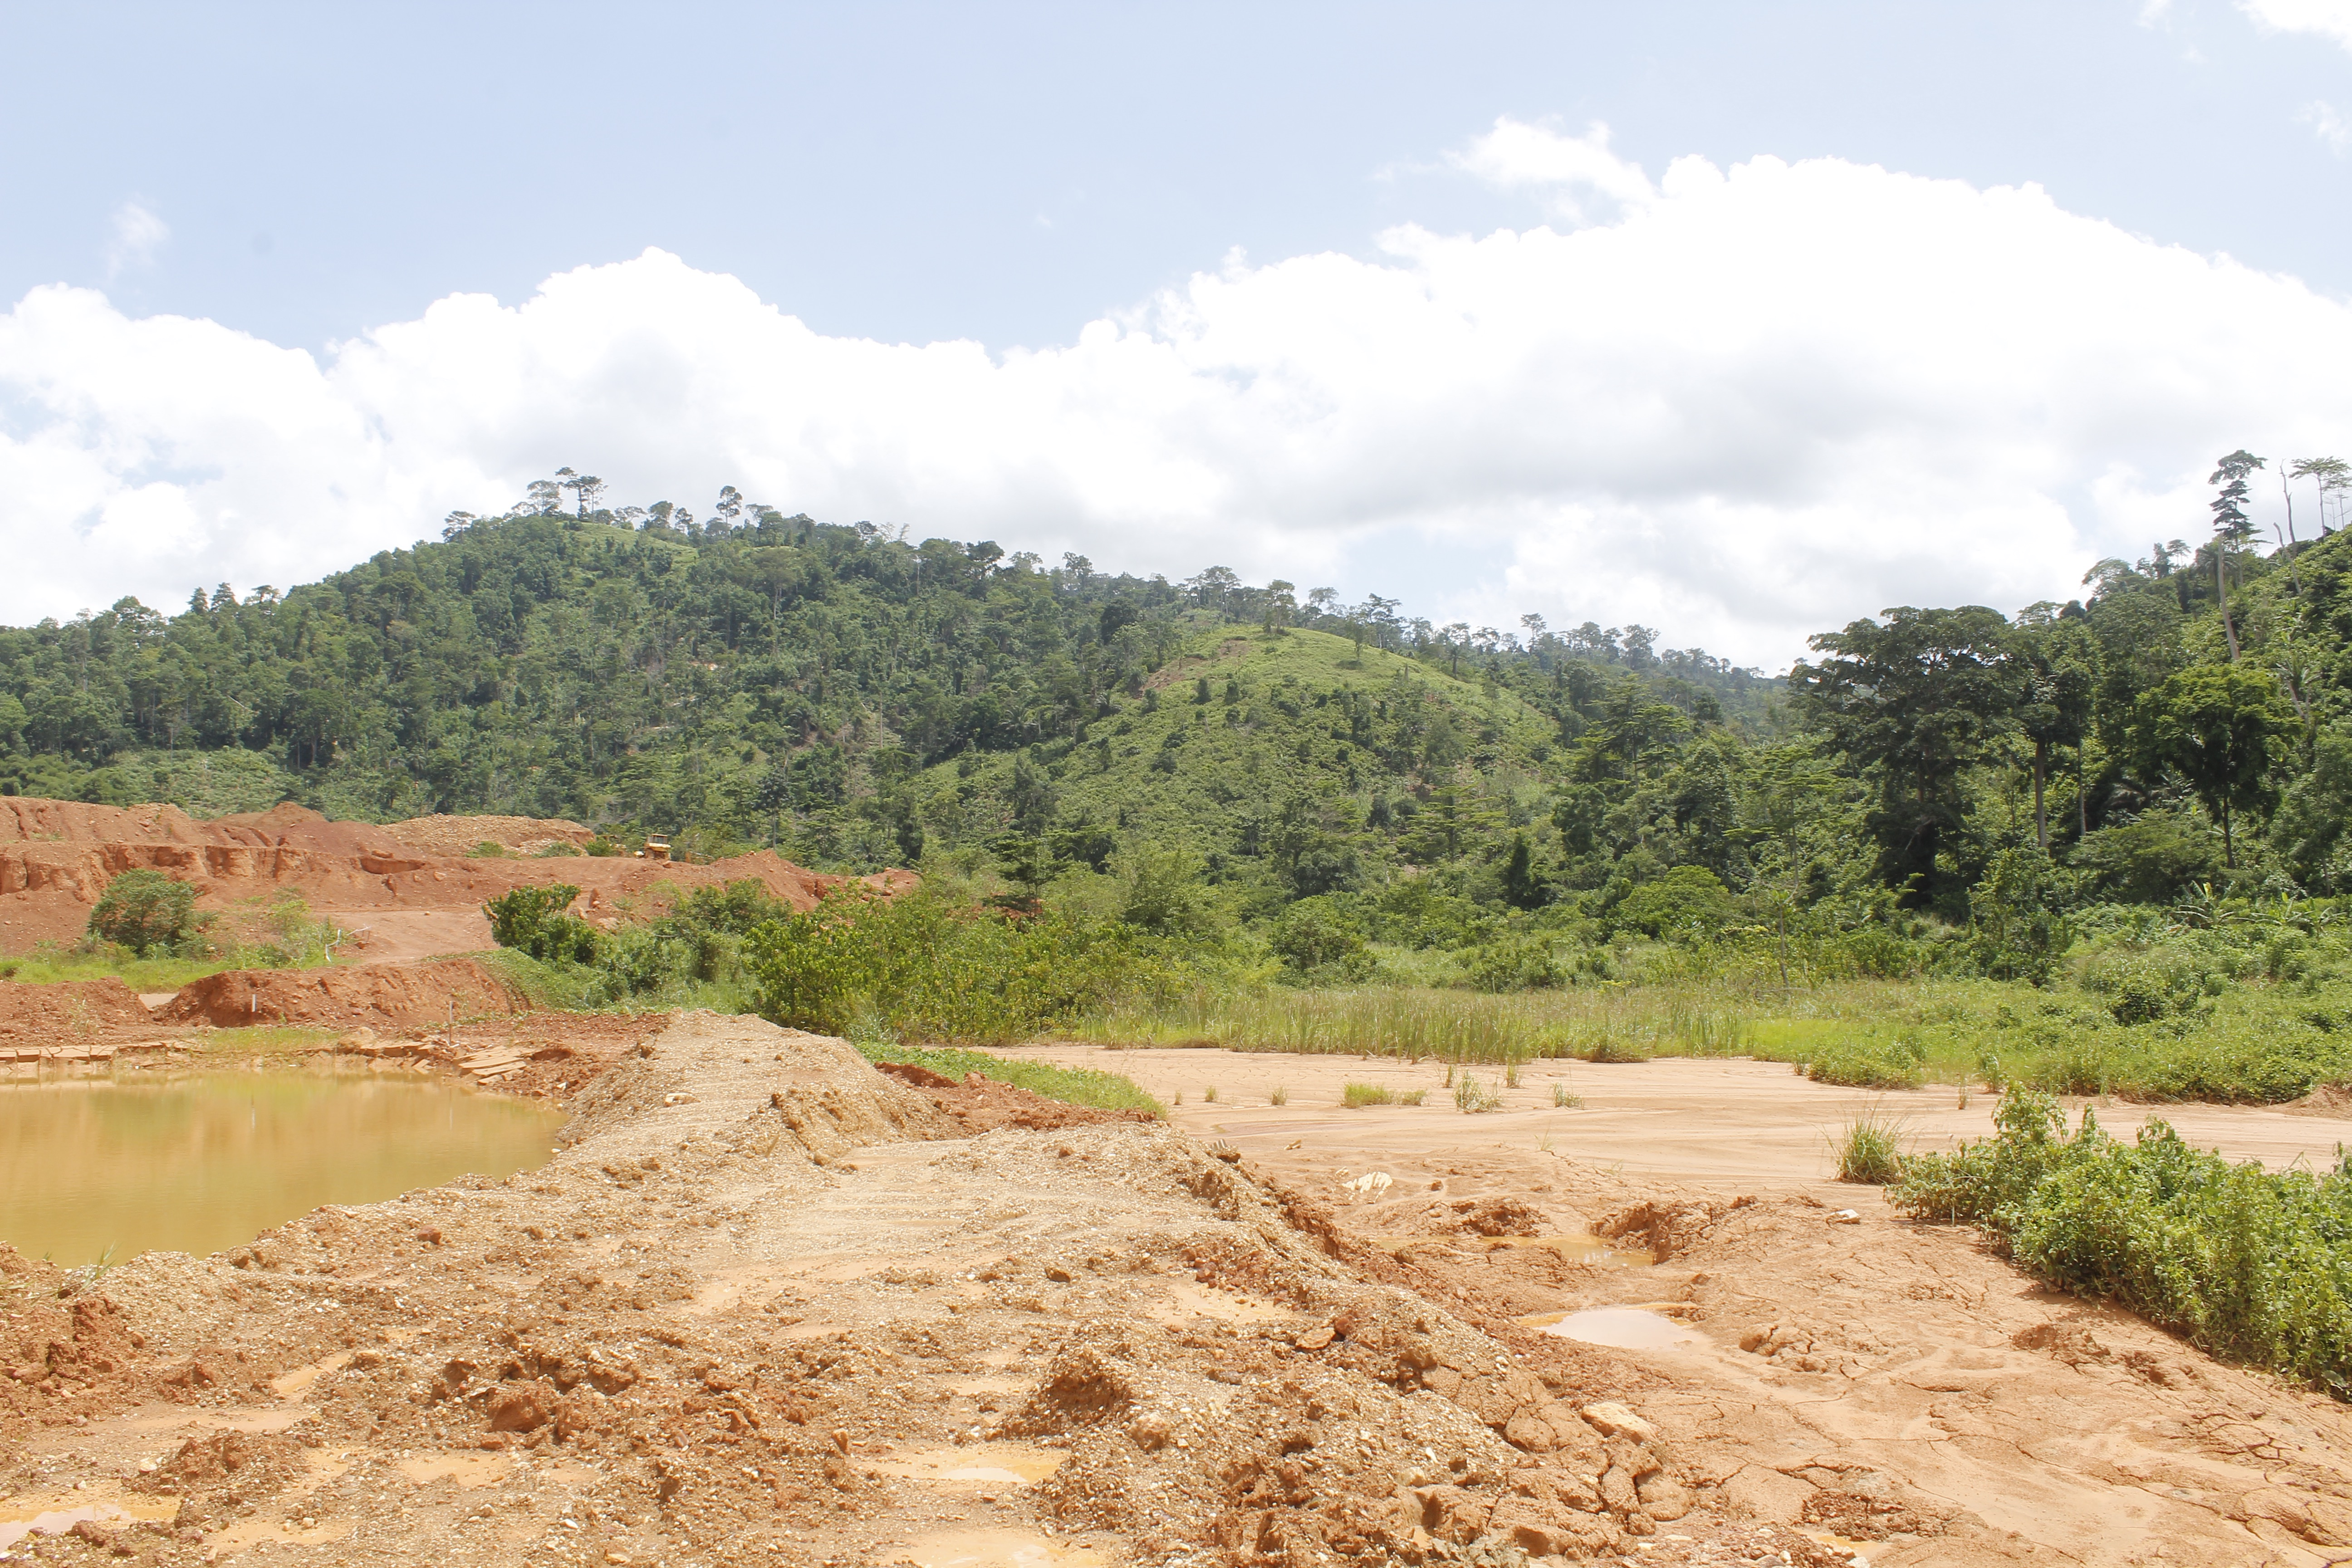 Toxic sludge split over from a dam at a small-scale mining site in southeastern Ghana, May 23, 2019.